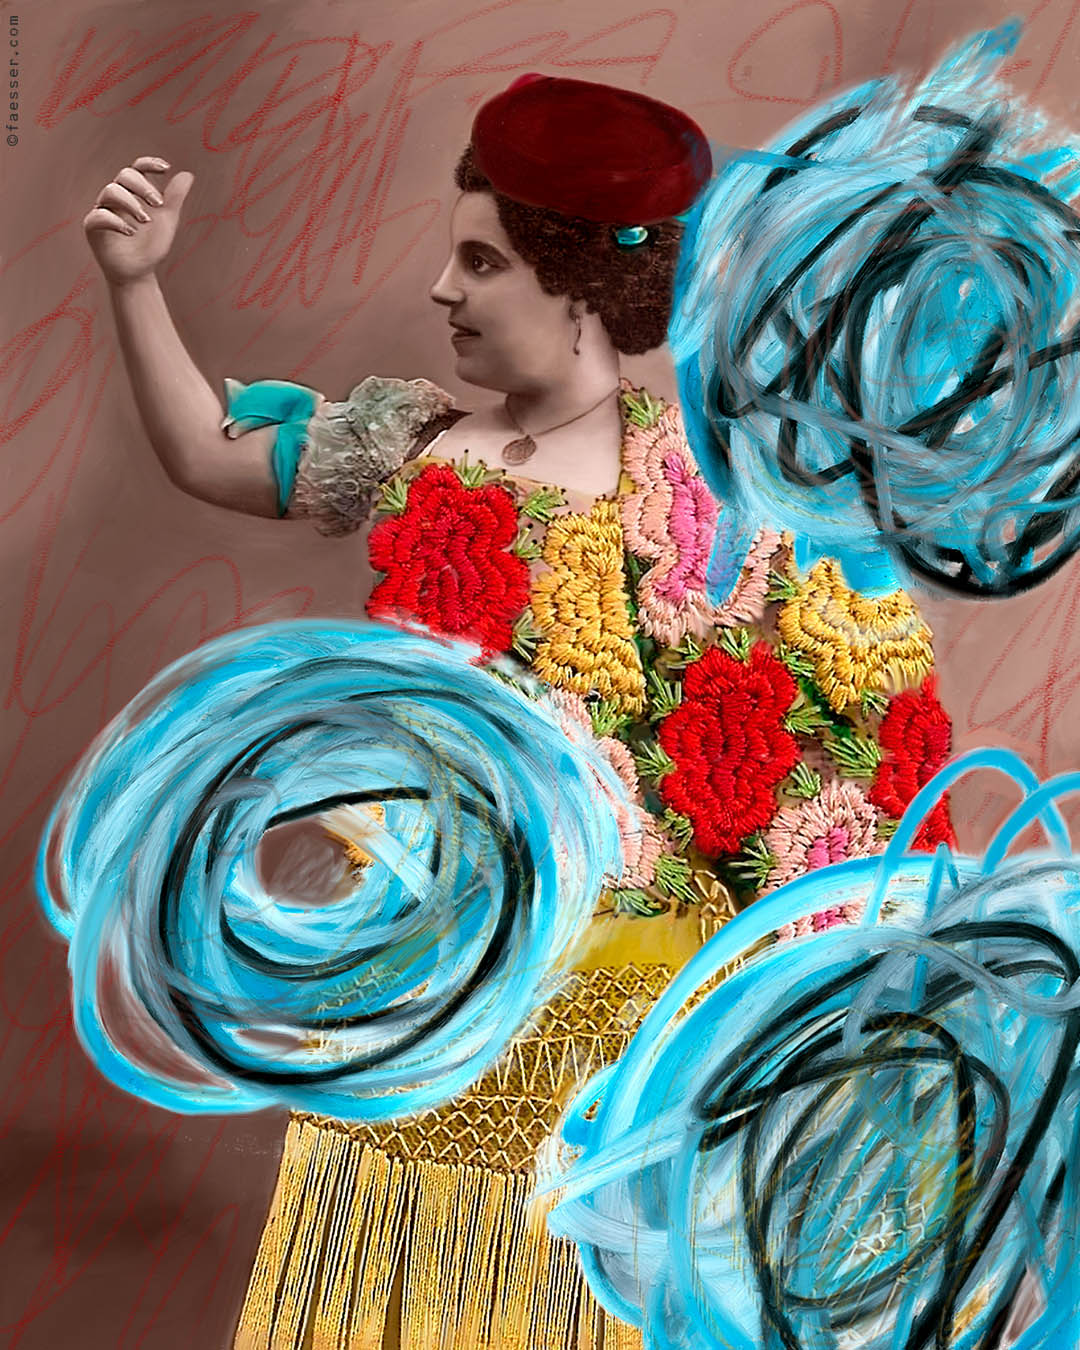 Flamenco: Embroidered grandma as a Flamenco dancer; artist Roland Faesser, sculptor and painter 2016